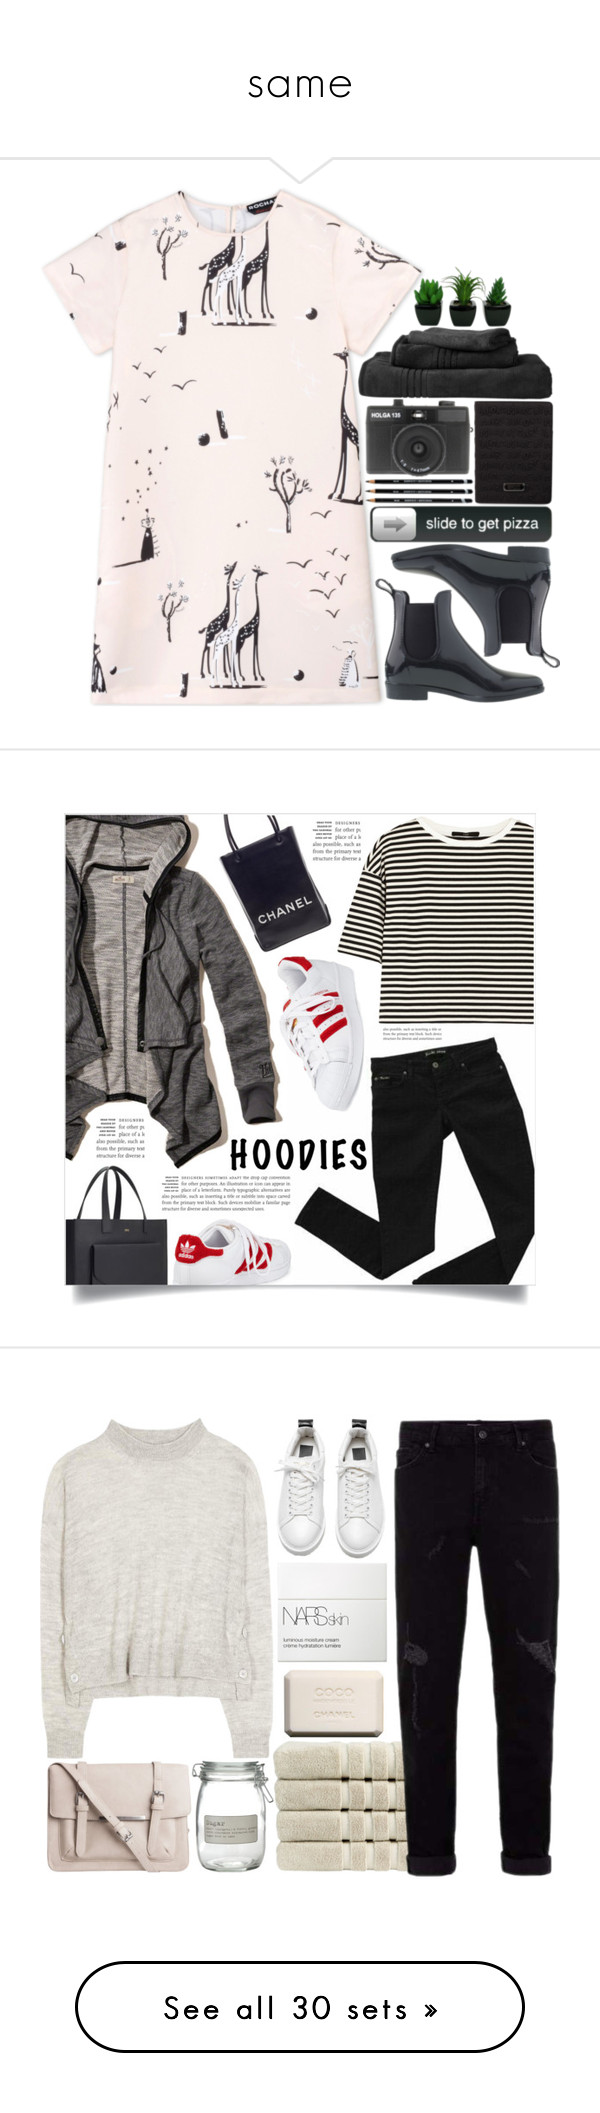 """""""same"""" by annabitchchase ❤ liked on Polyvore featuring Rochas, J.Crew, Marc by Marc Jacobs, Holga, Hollister Co., TIBI, Chanel, adidas, Hoodies and Christy"""